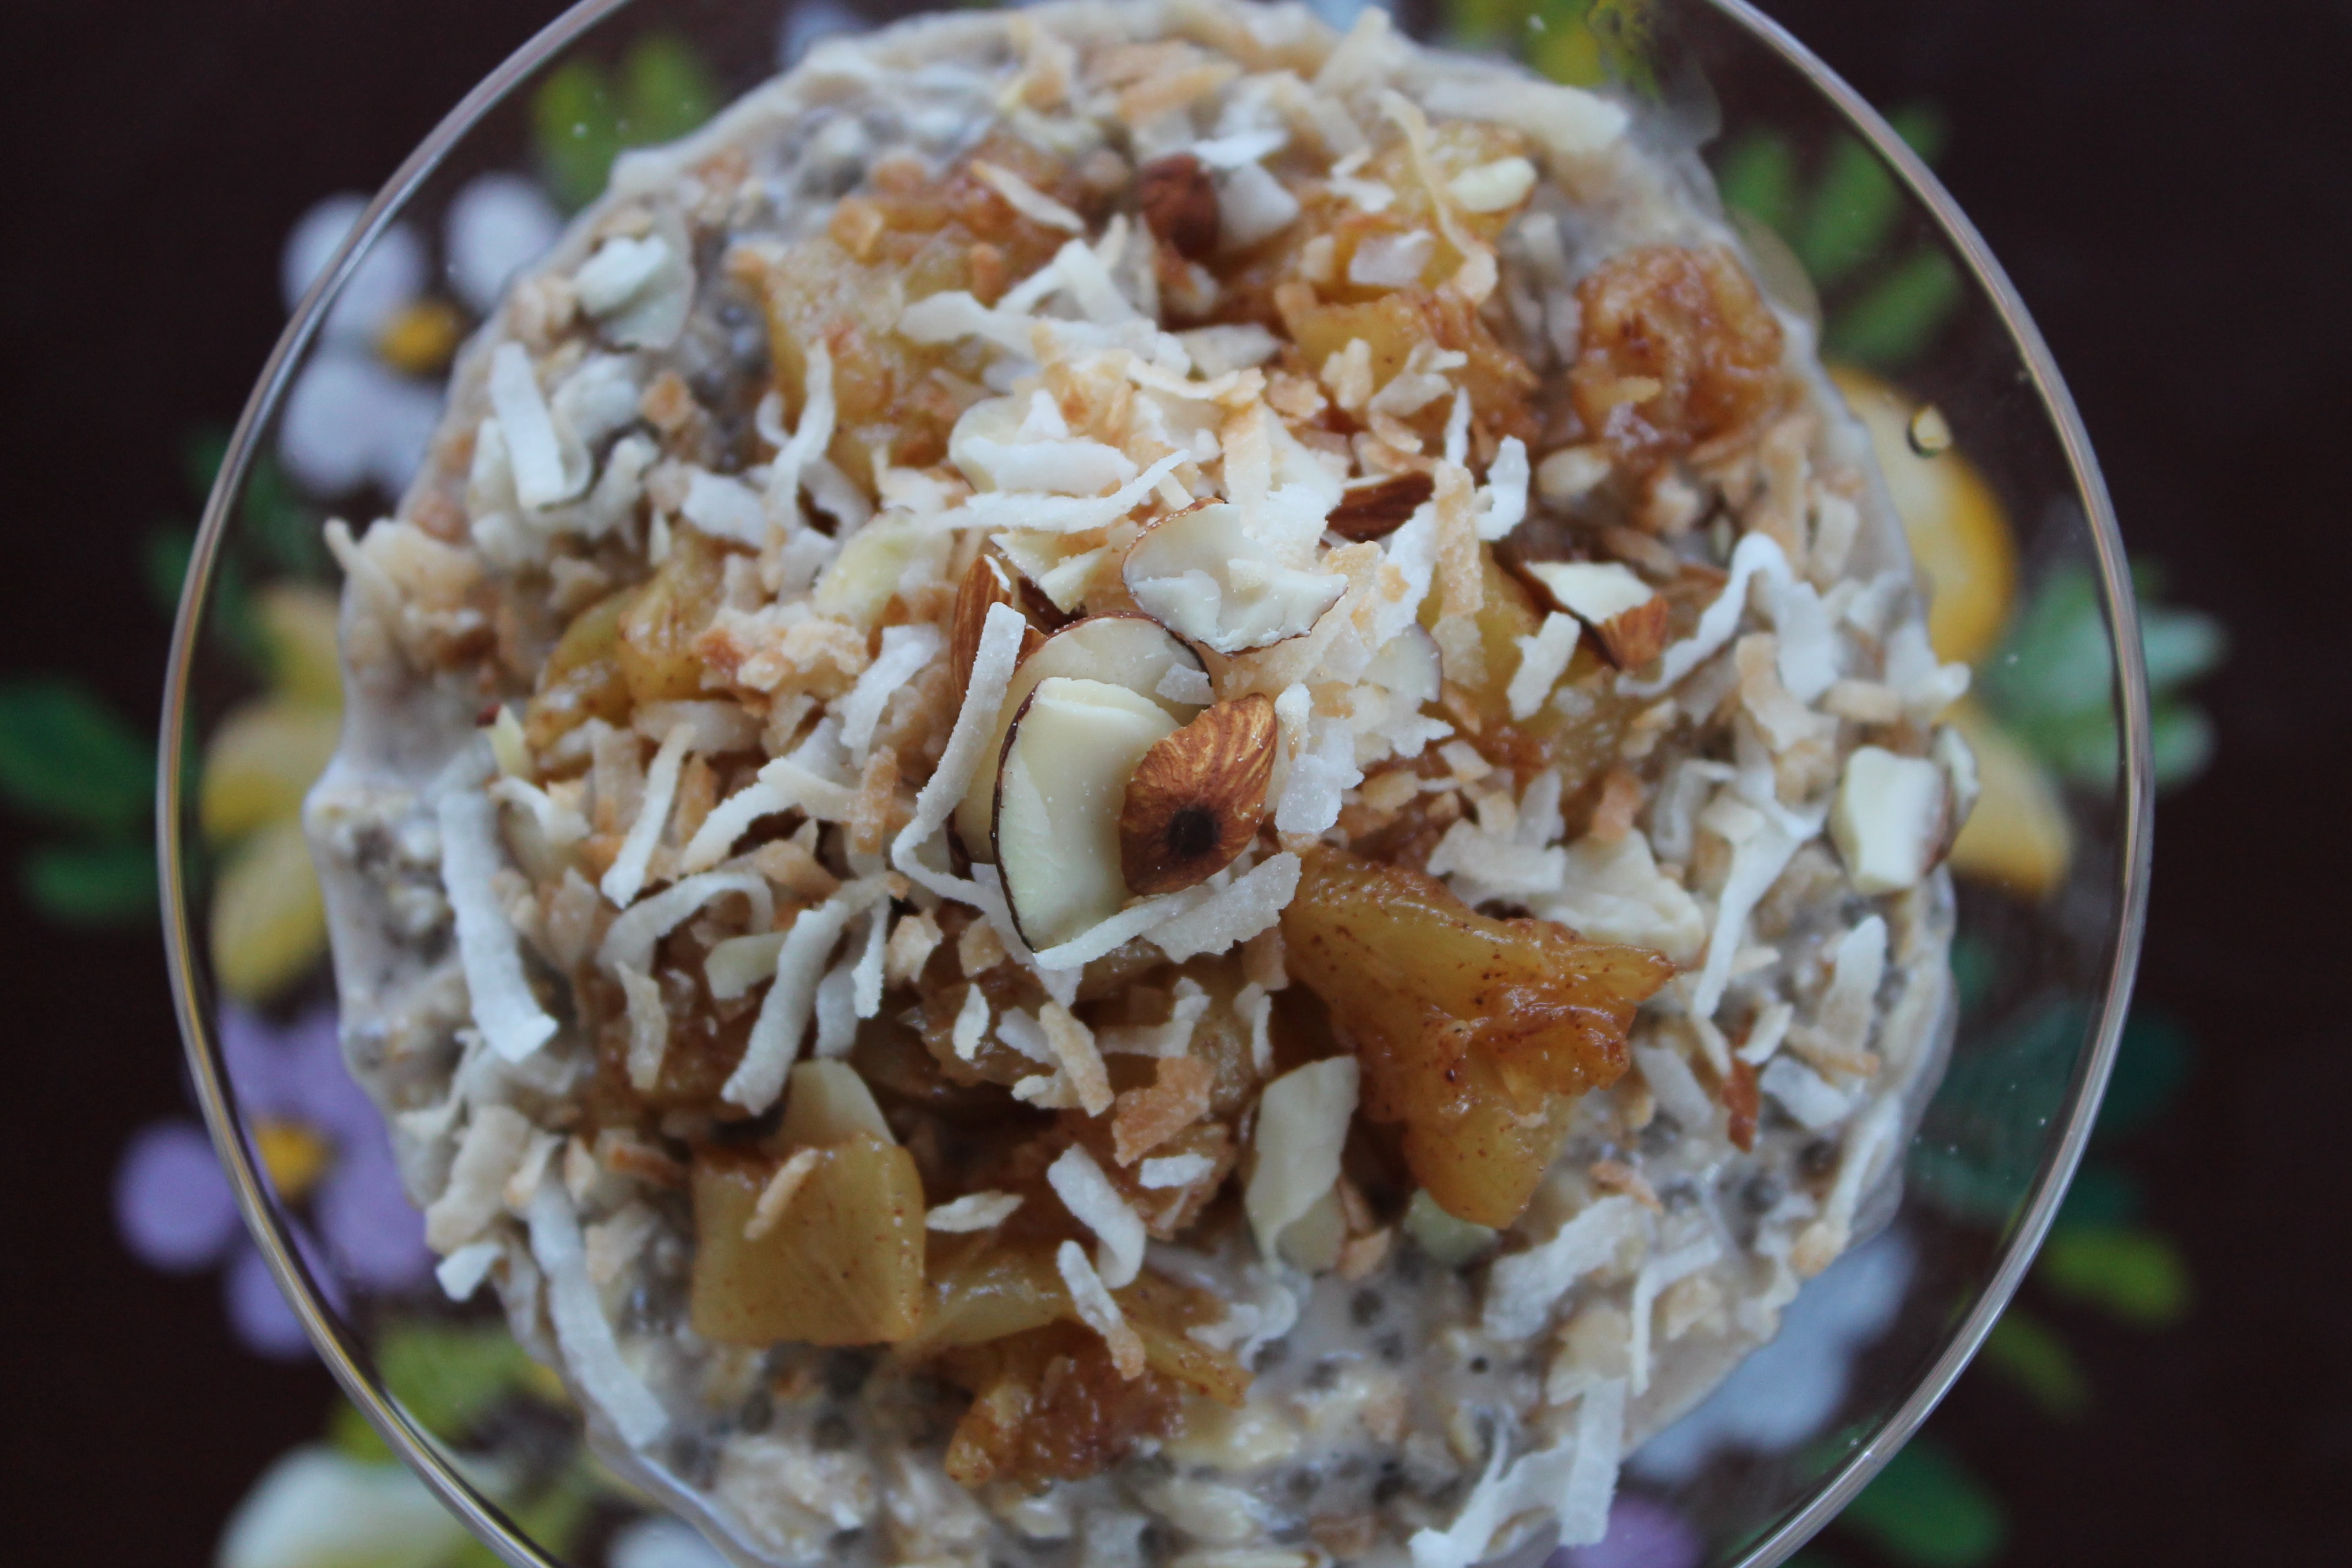 Overnight Oats with Coconut Milk, Cinnamon-Ginger Pineapple, and Toasted Coconut Almond Topping